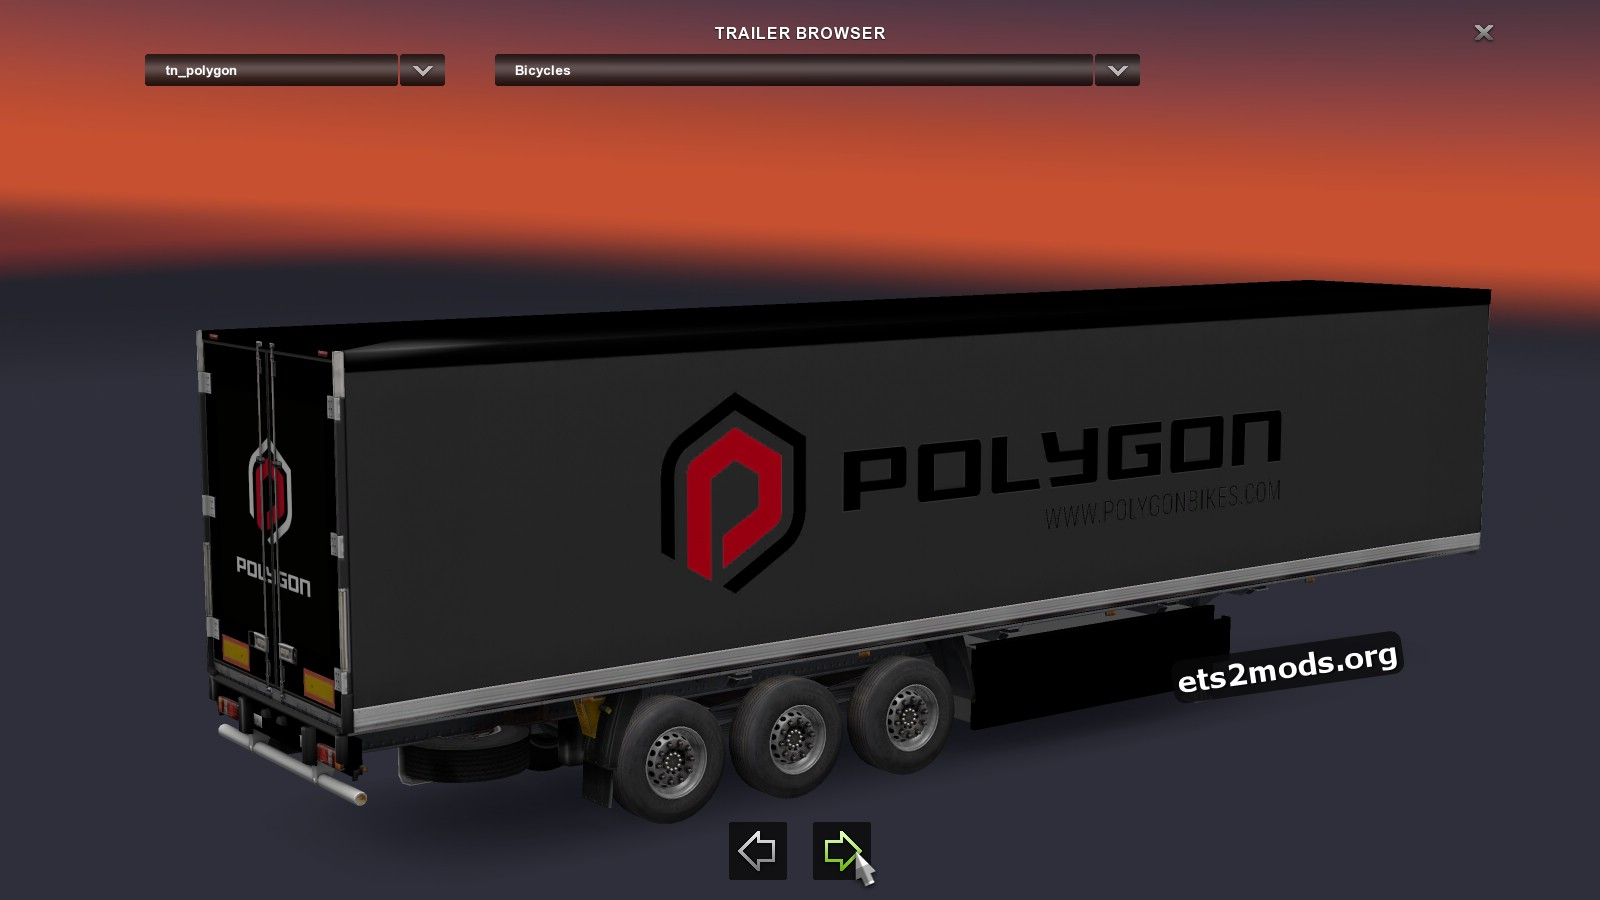 Trailers Pack: Bicycle and Parts